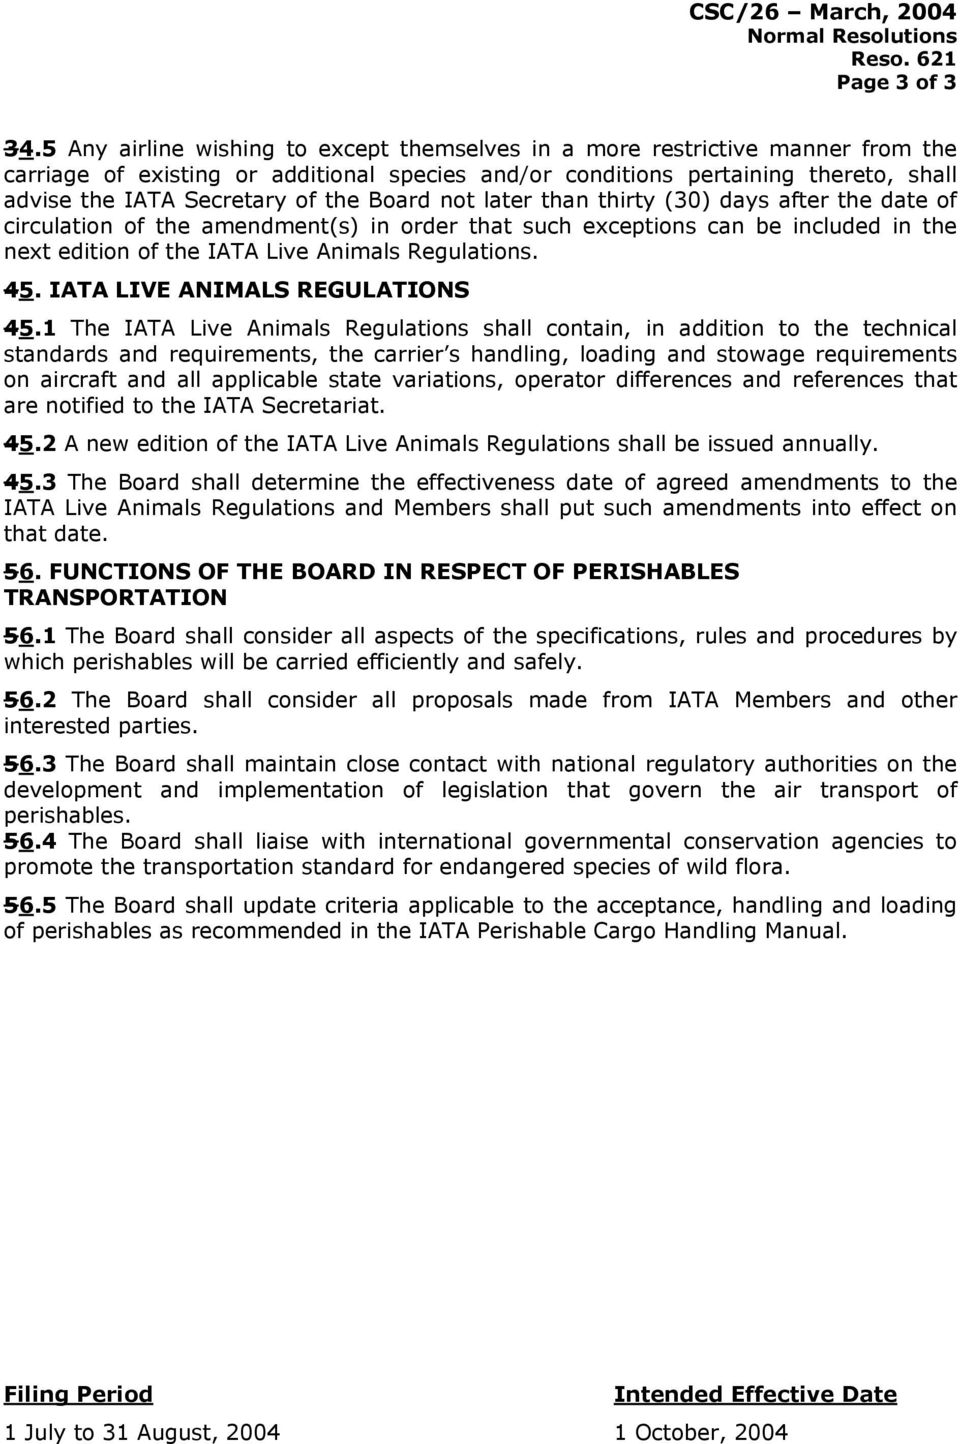 the Board not later than thirty (30) days after the date of circulation of the amendment(s) in order that such exceptions can be included in the next edition of the IATA Live Animals Regulations. 45.